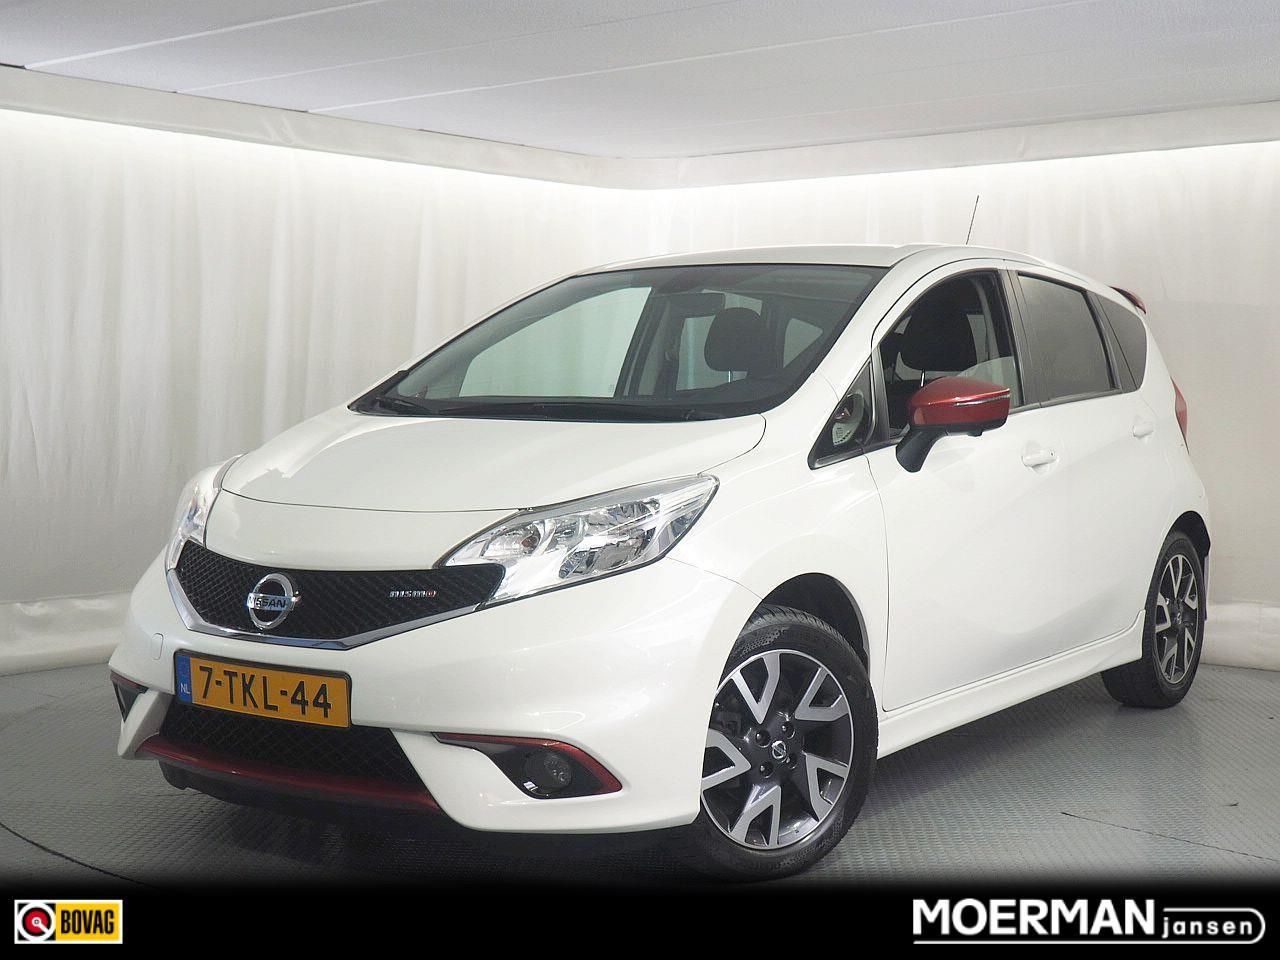 Nissan Note 1.2 connect edition nismo style / nismo style / navigatie / camera / nl auto / 80.000km